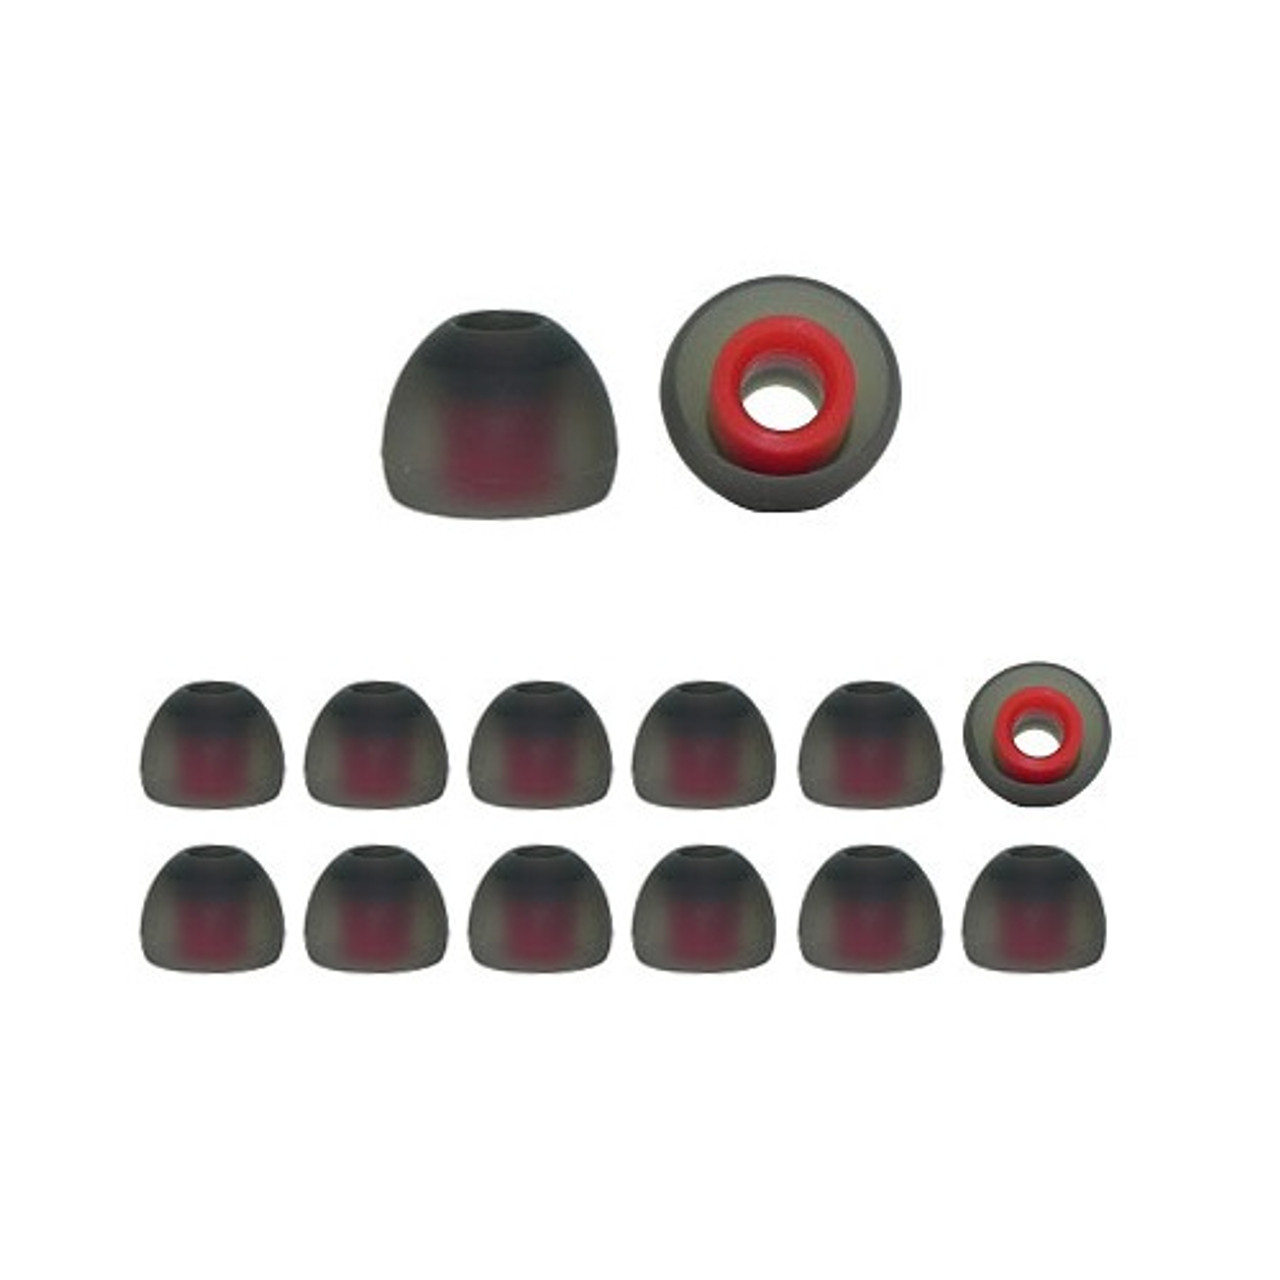 Dual color silicone earbud tips